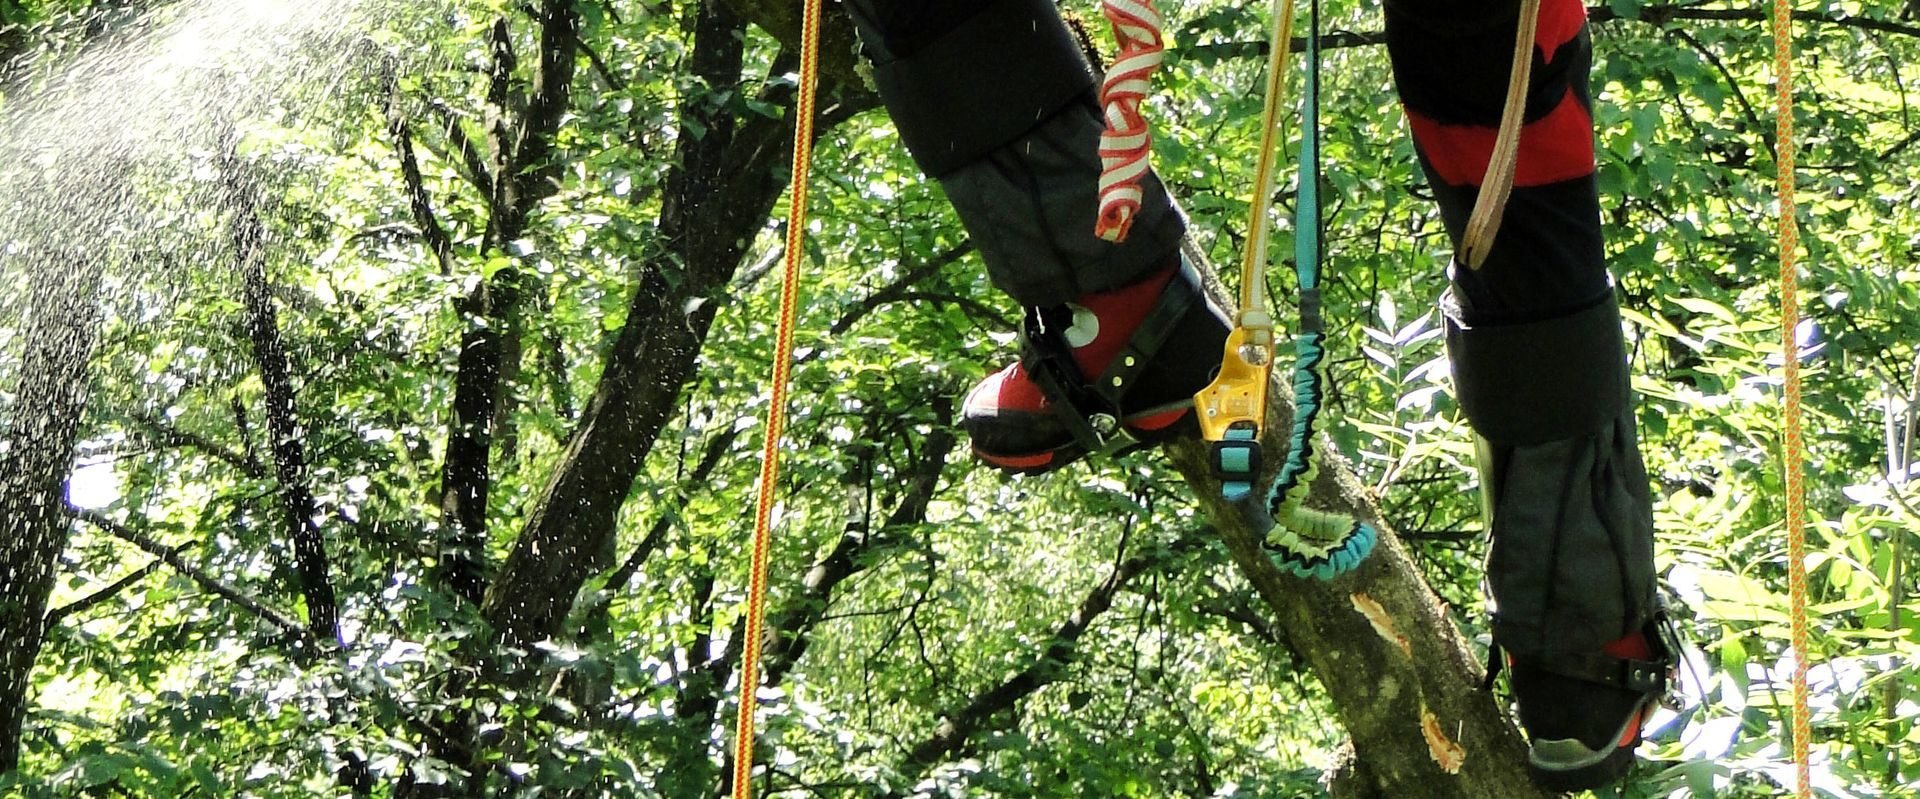 Permalink to: Chainsaw protection shoes in tree care